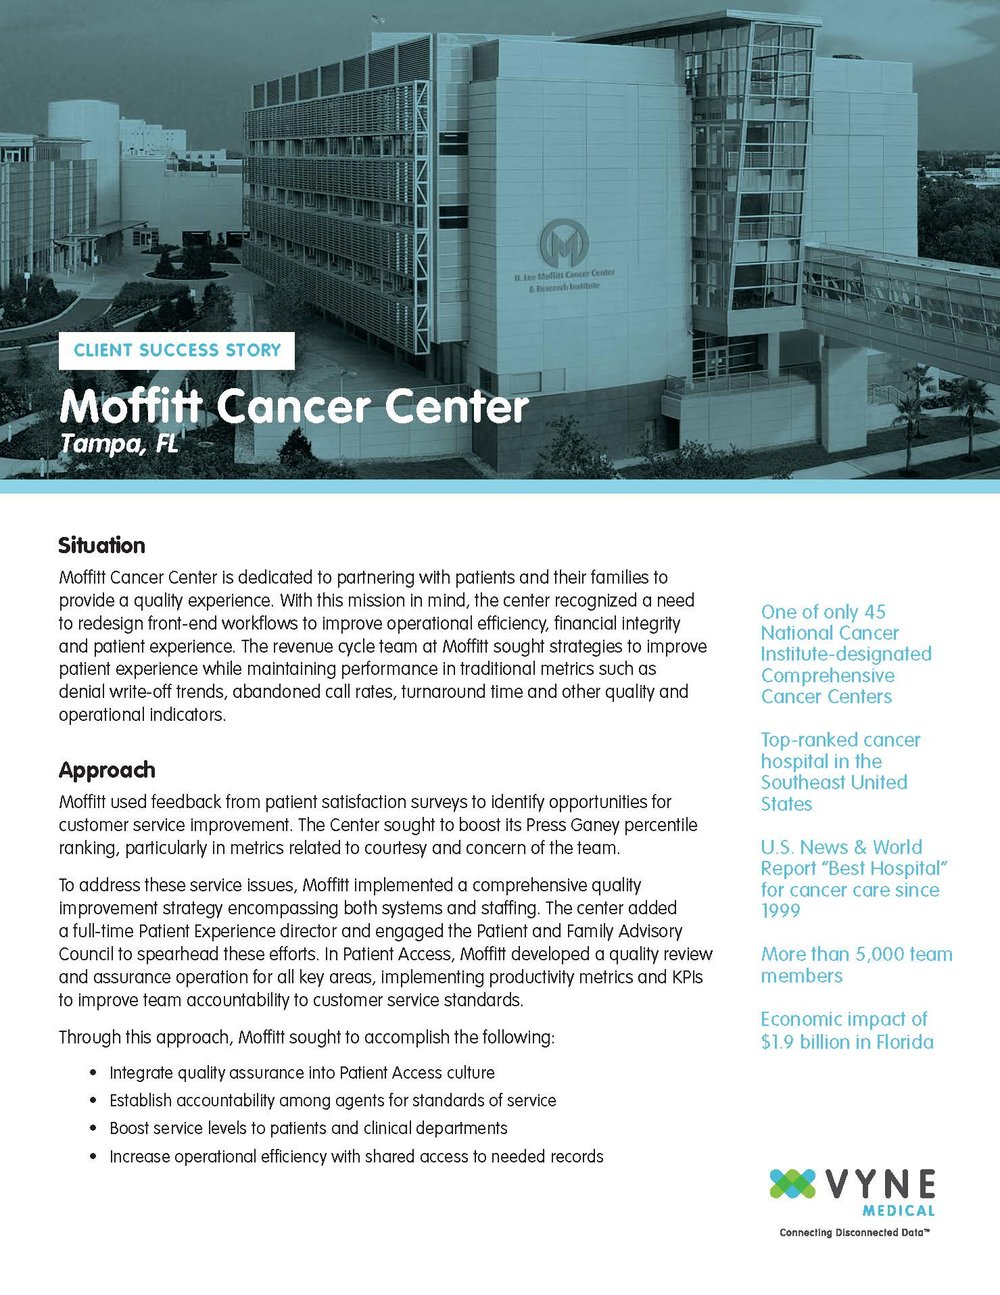 case-study-Moffitt-Cancer-Center_Page_1.jpg